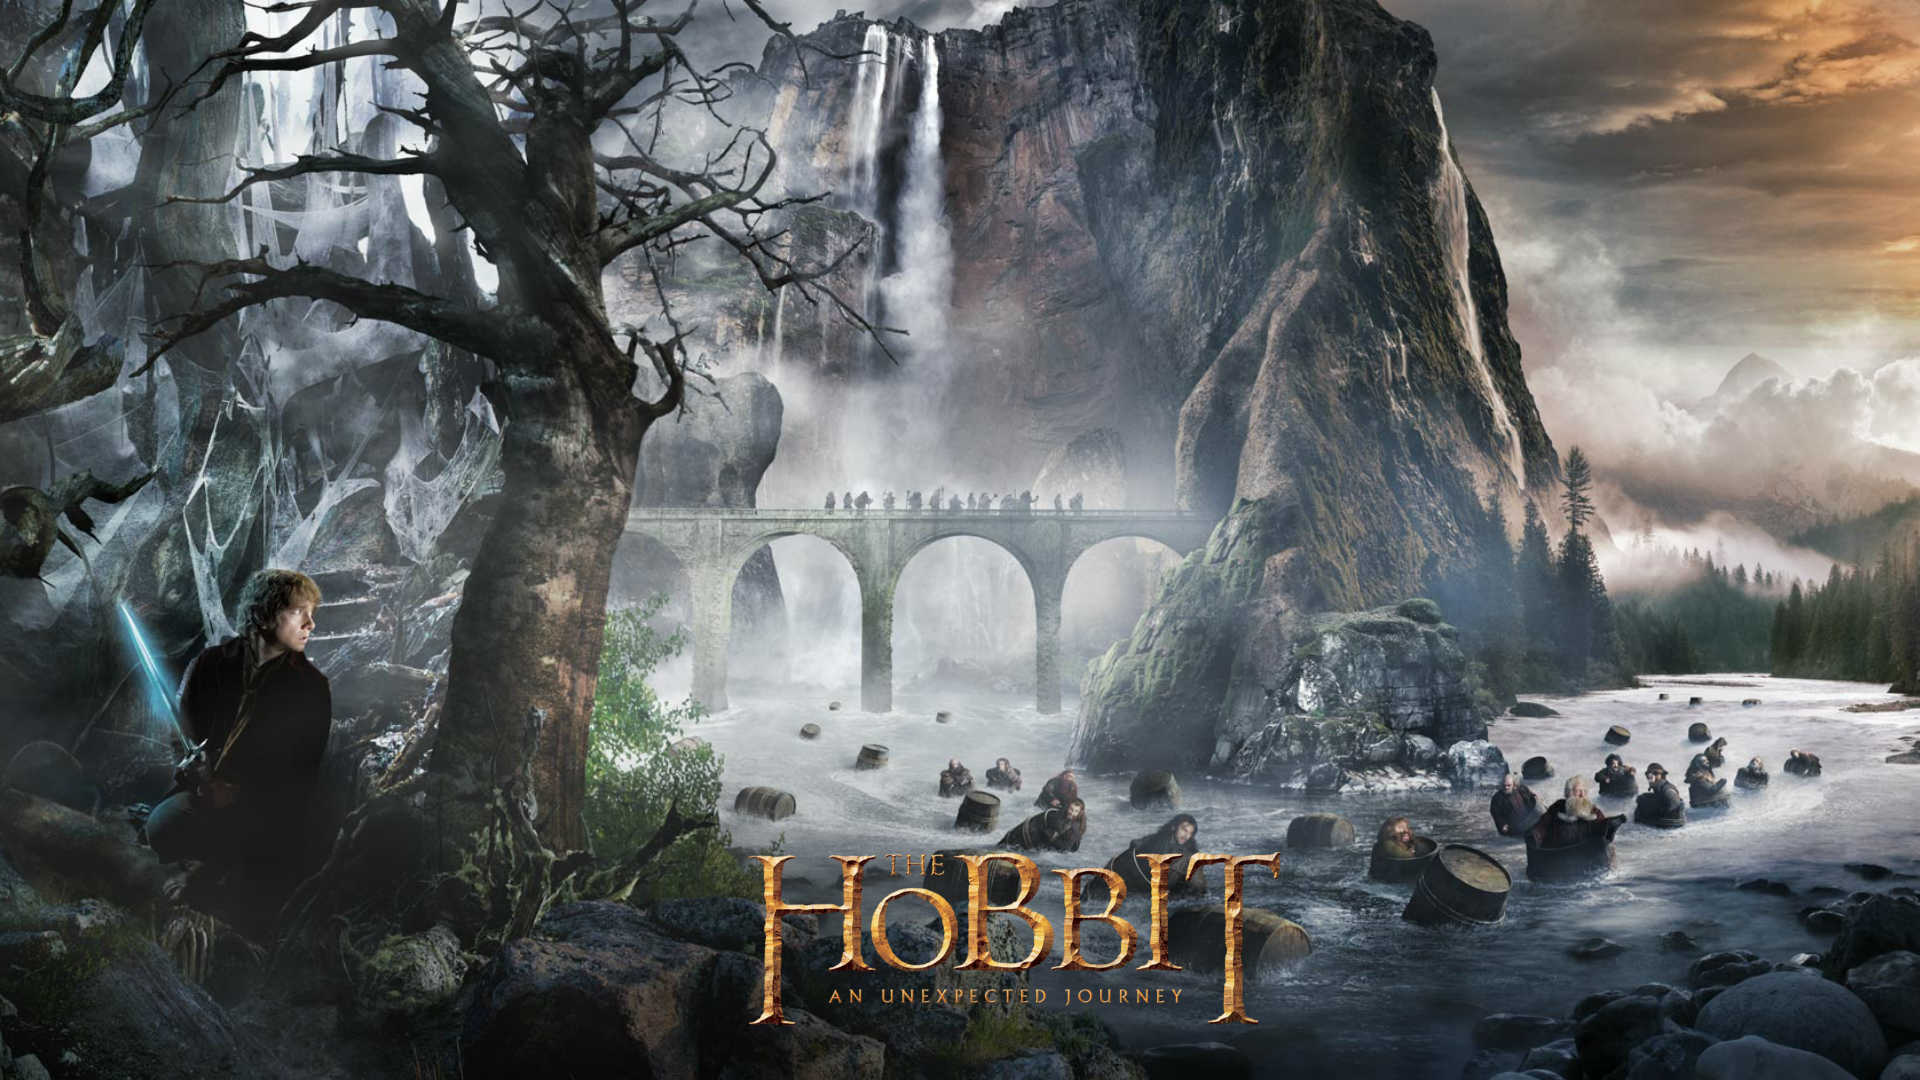 the hobbit wallpaper the hobbit wallpaper  fanpop